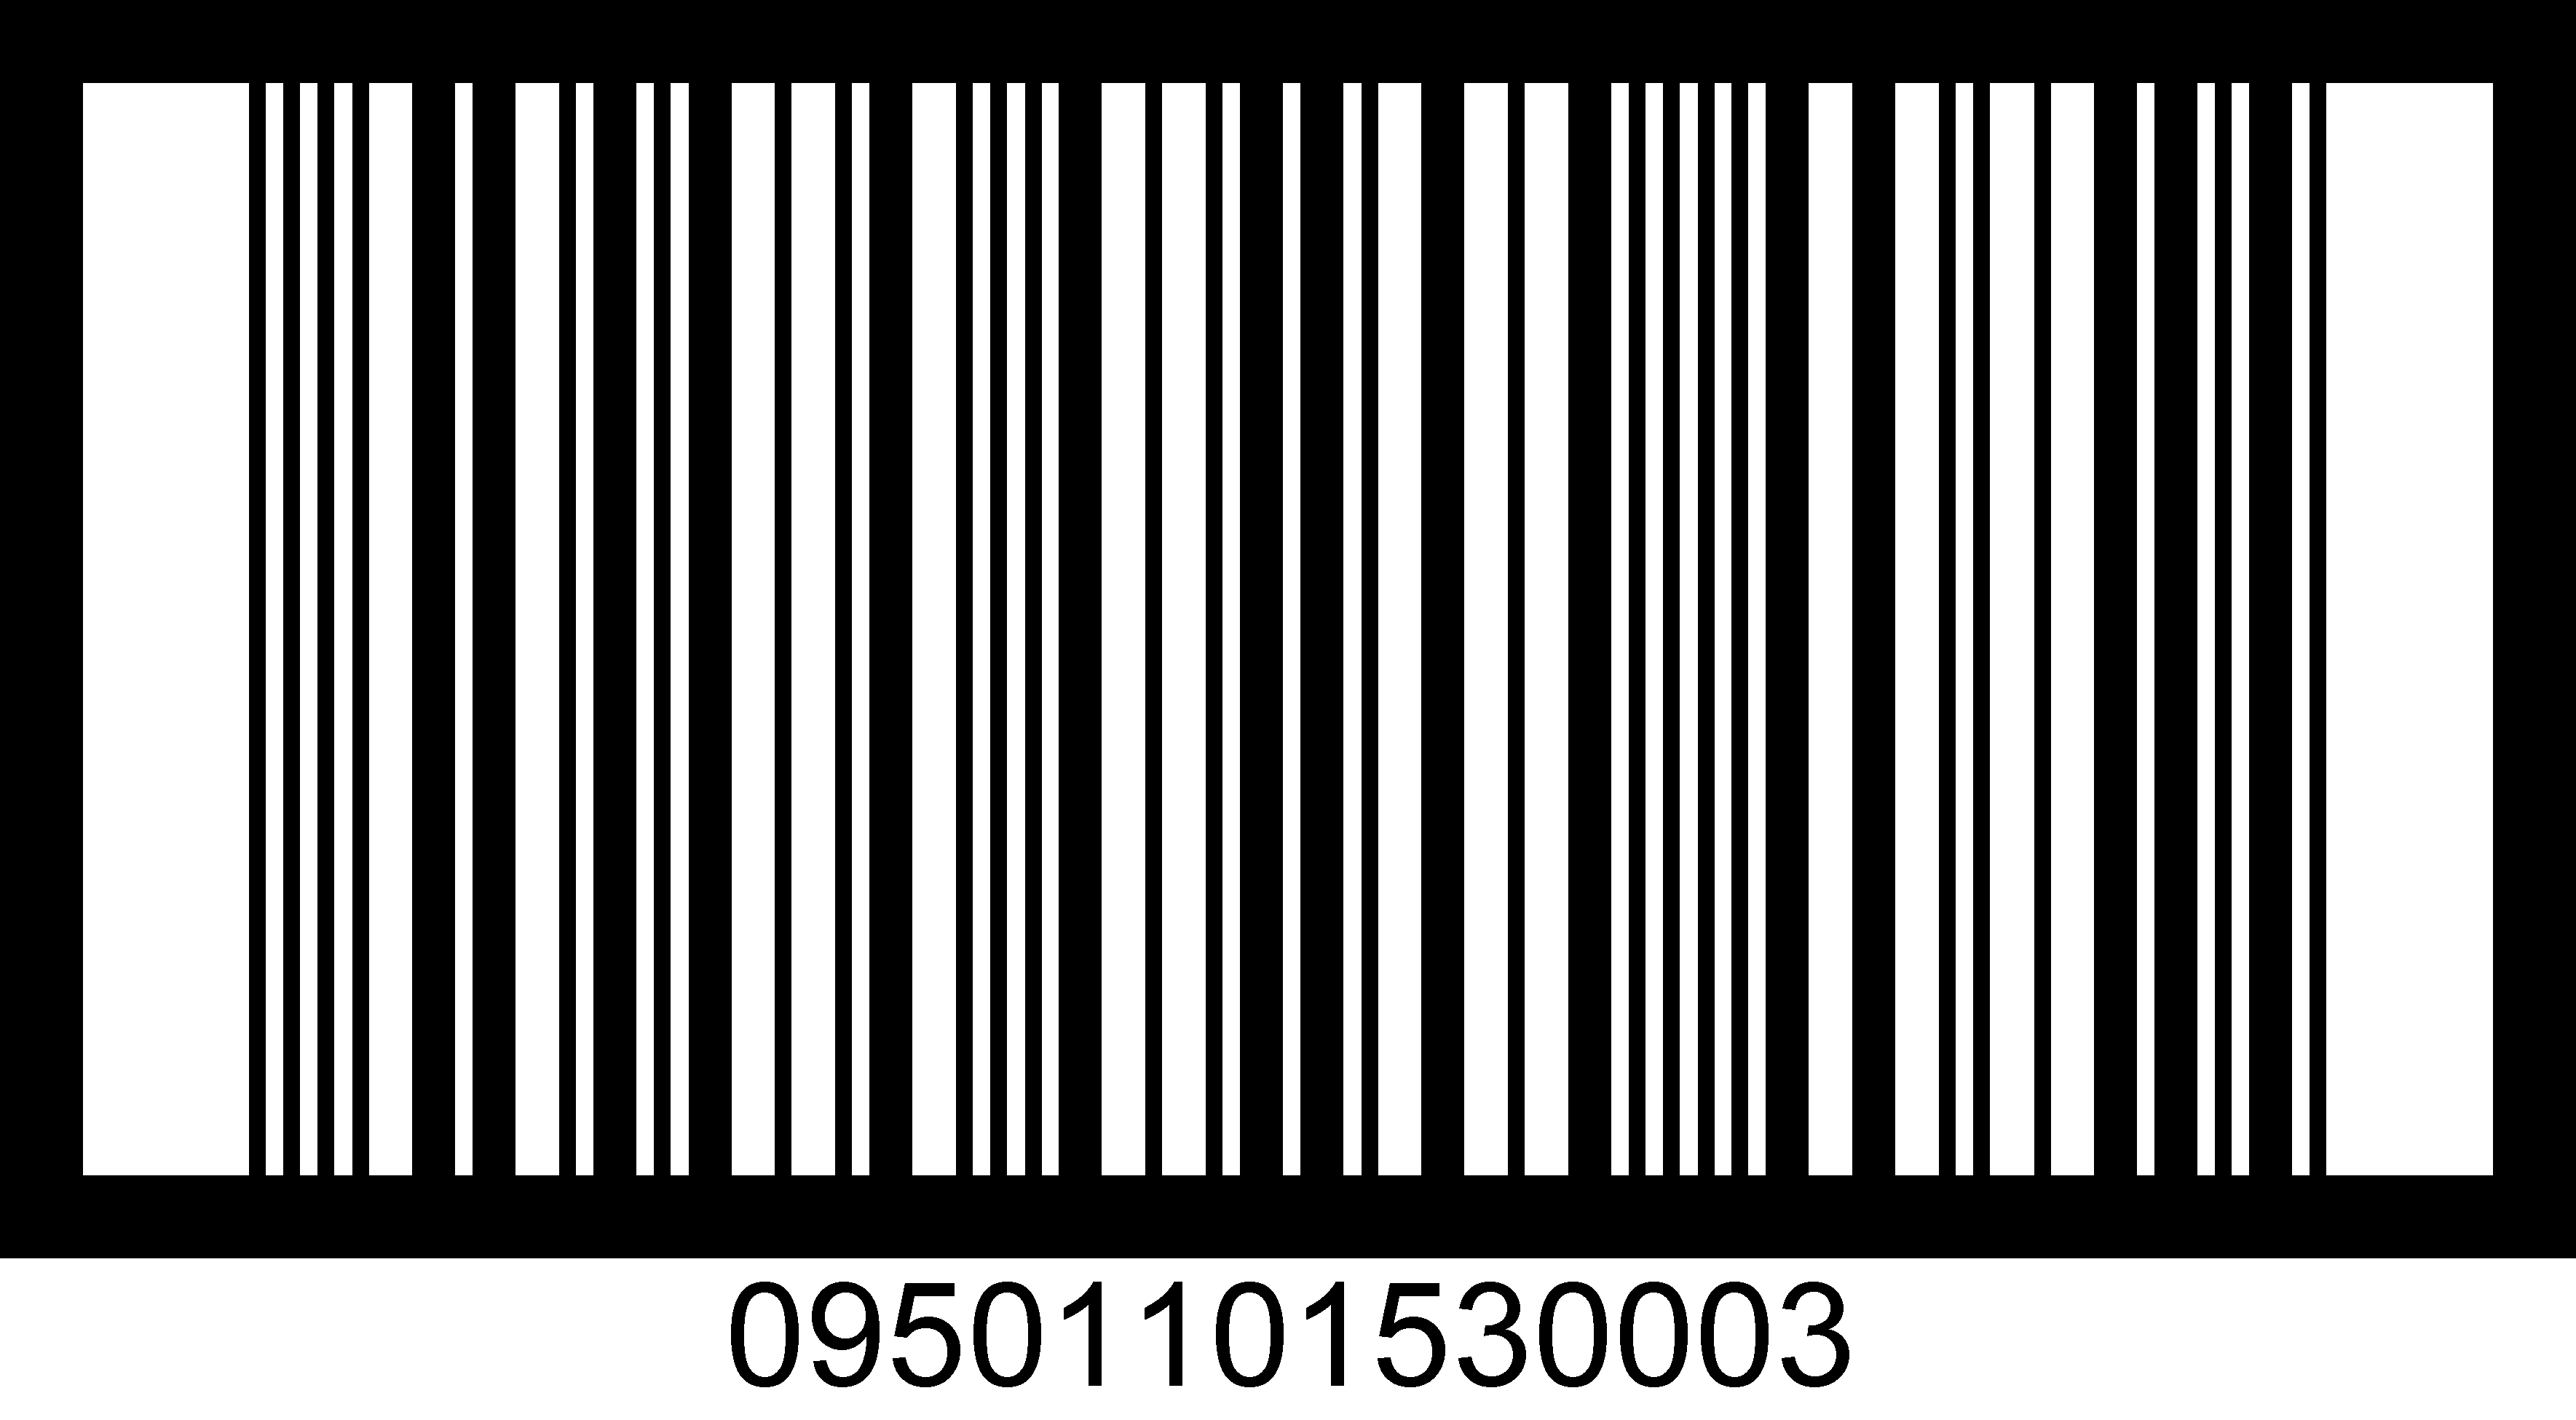 Code 128 Barcode Font For Excel 2010